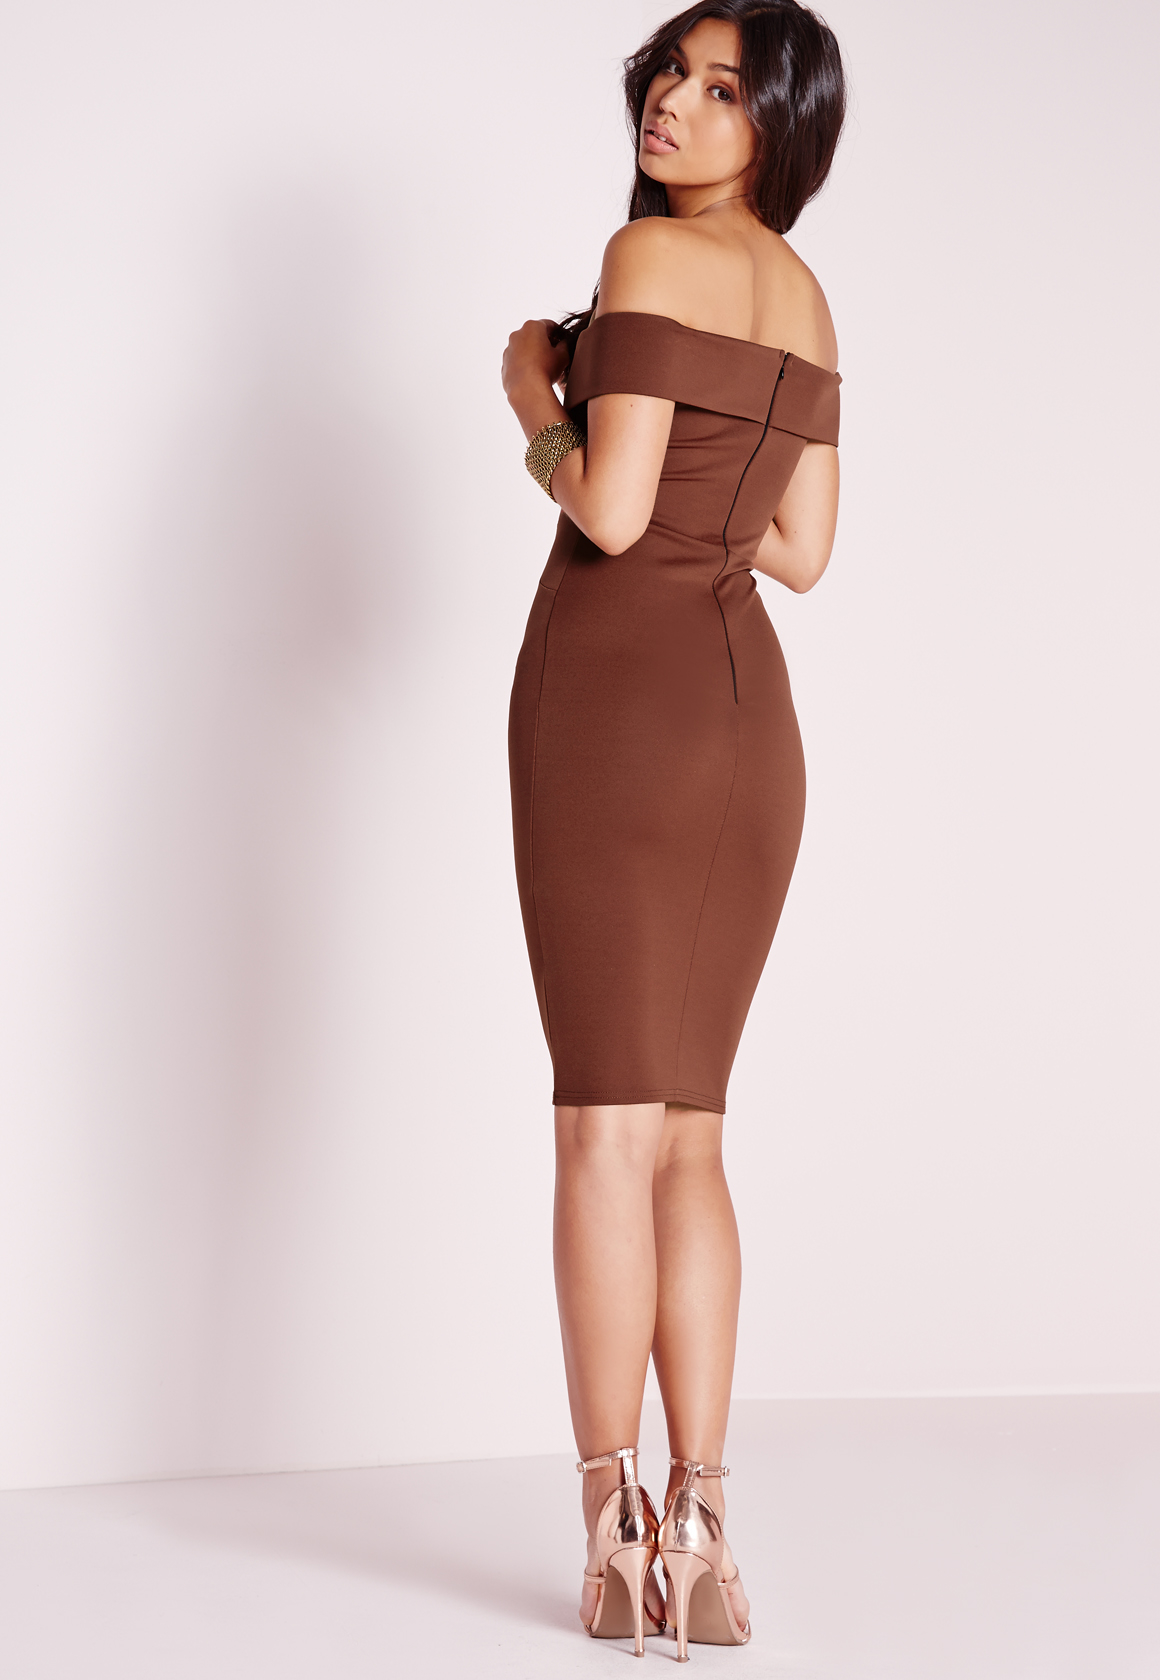 c3c3d3ef8af3 Lyst - Missguided V Front Bardot Midi Dress Chocolate in Brown